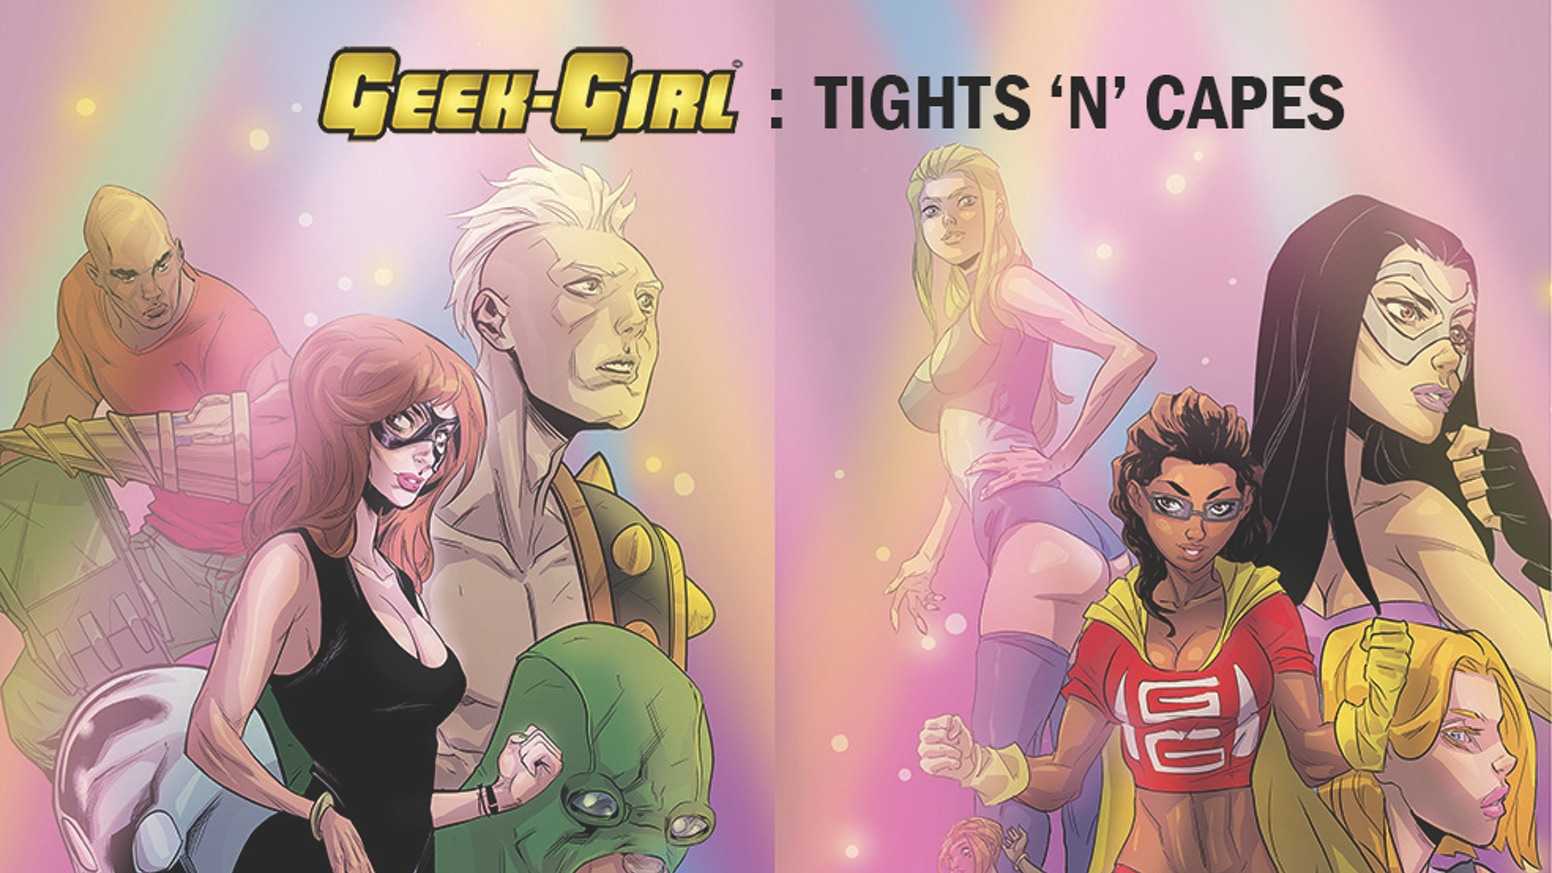 'Mean Girls meets Super-Heroes' in the new Kickstarter, with all issues of the Geek-Girl series including a Brand New 2-part Story Arc!